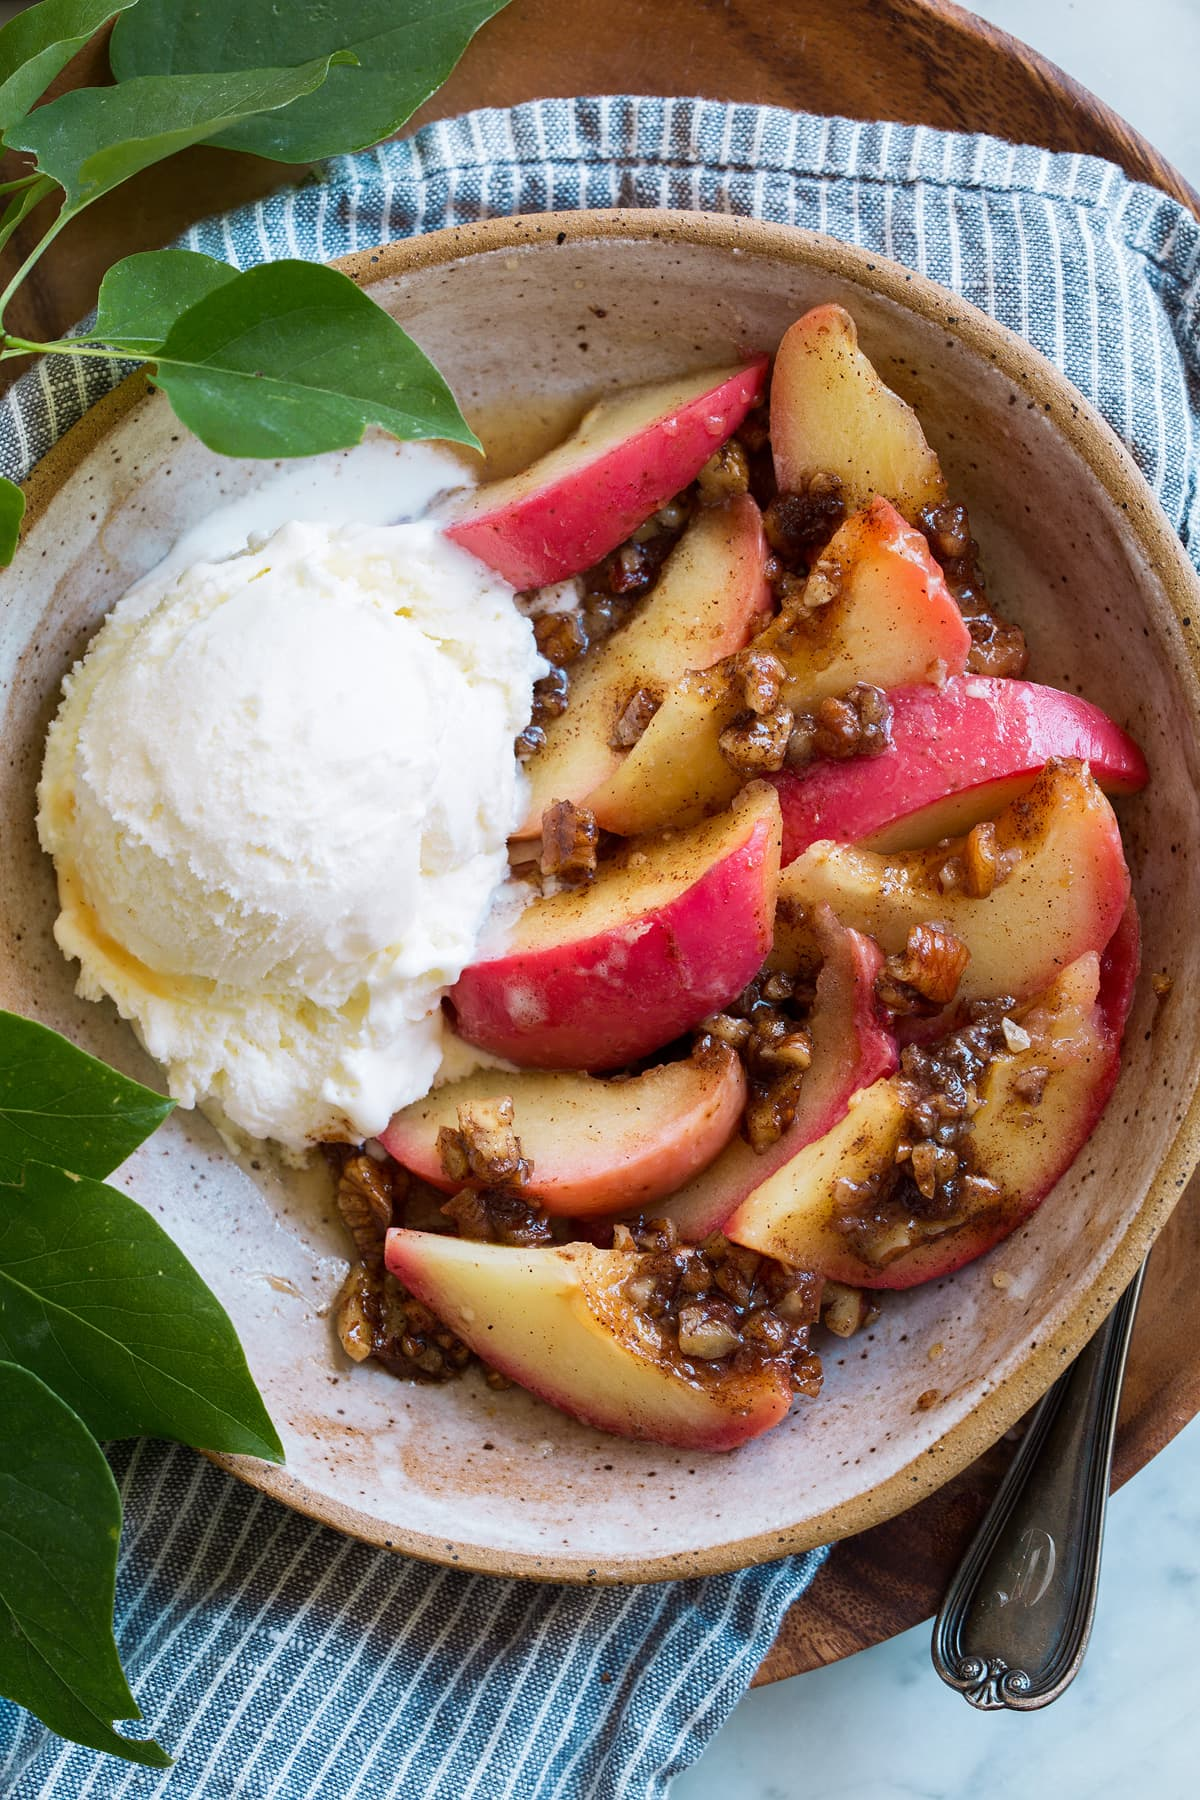 Baked apple cut into slices with pecan filling over top and a side of vanilla ice cream.